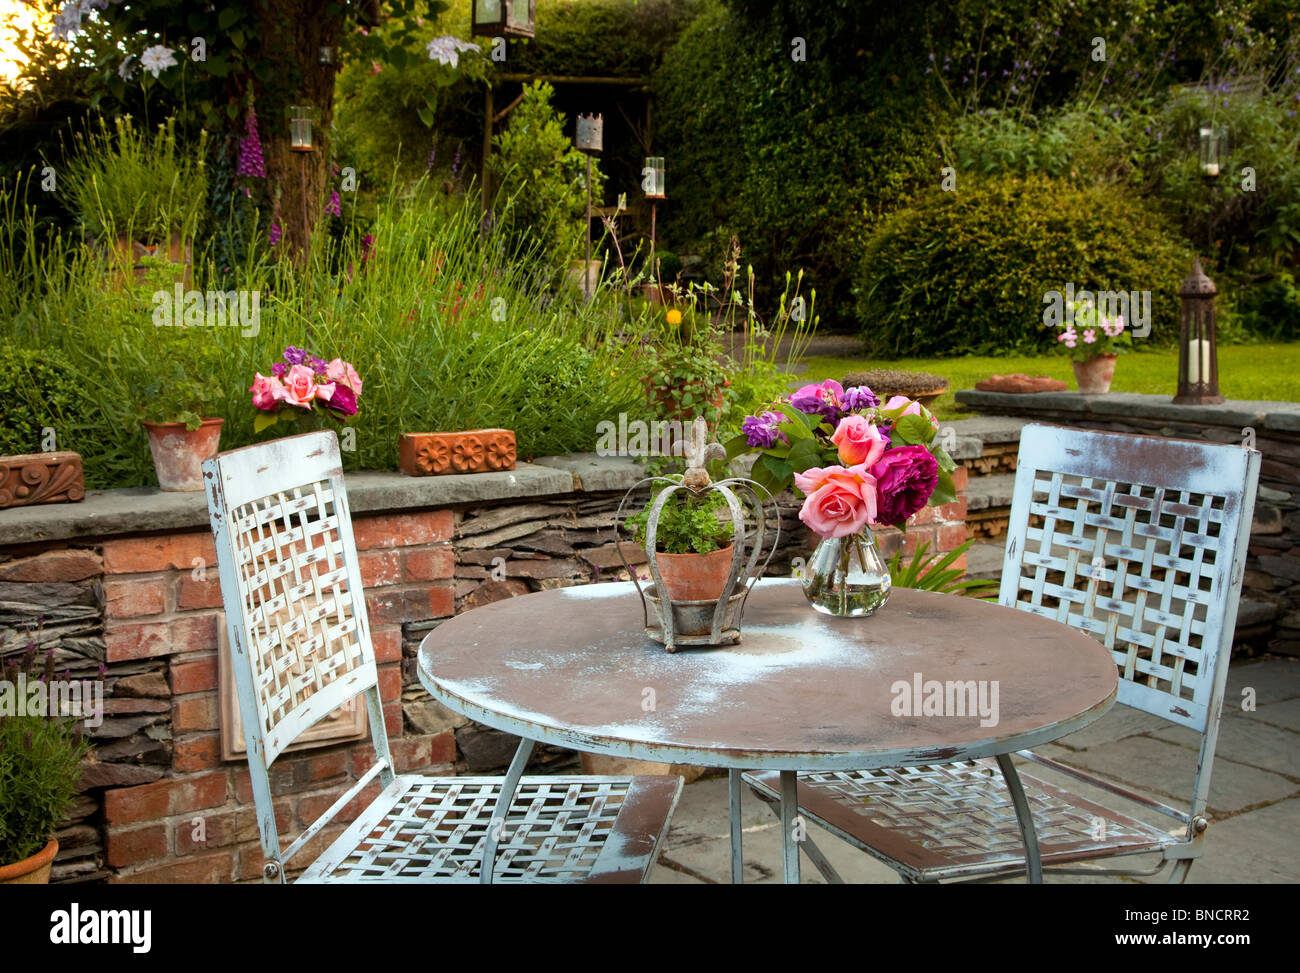 Metal table and chairs on patio with candles and lanterns in garden at night - Stock Image